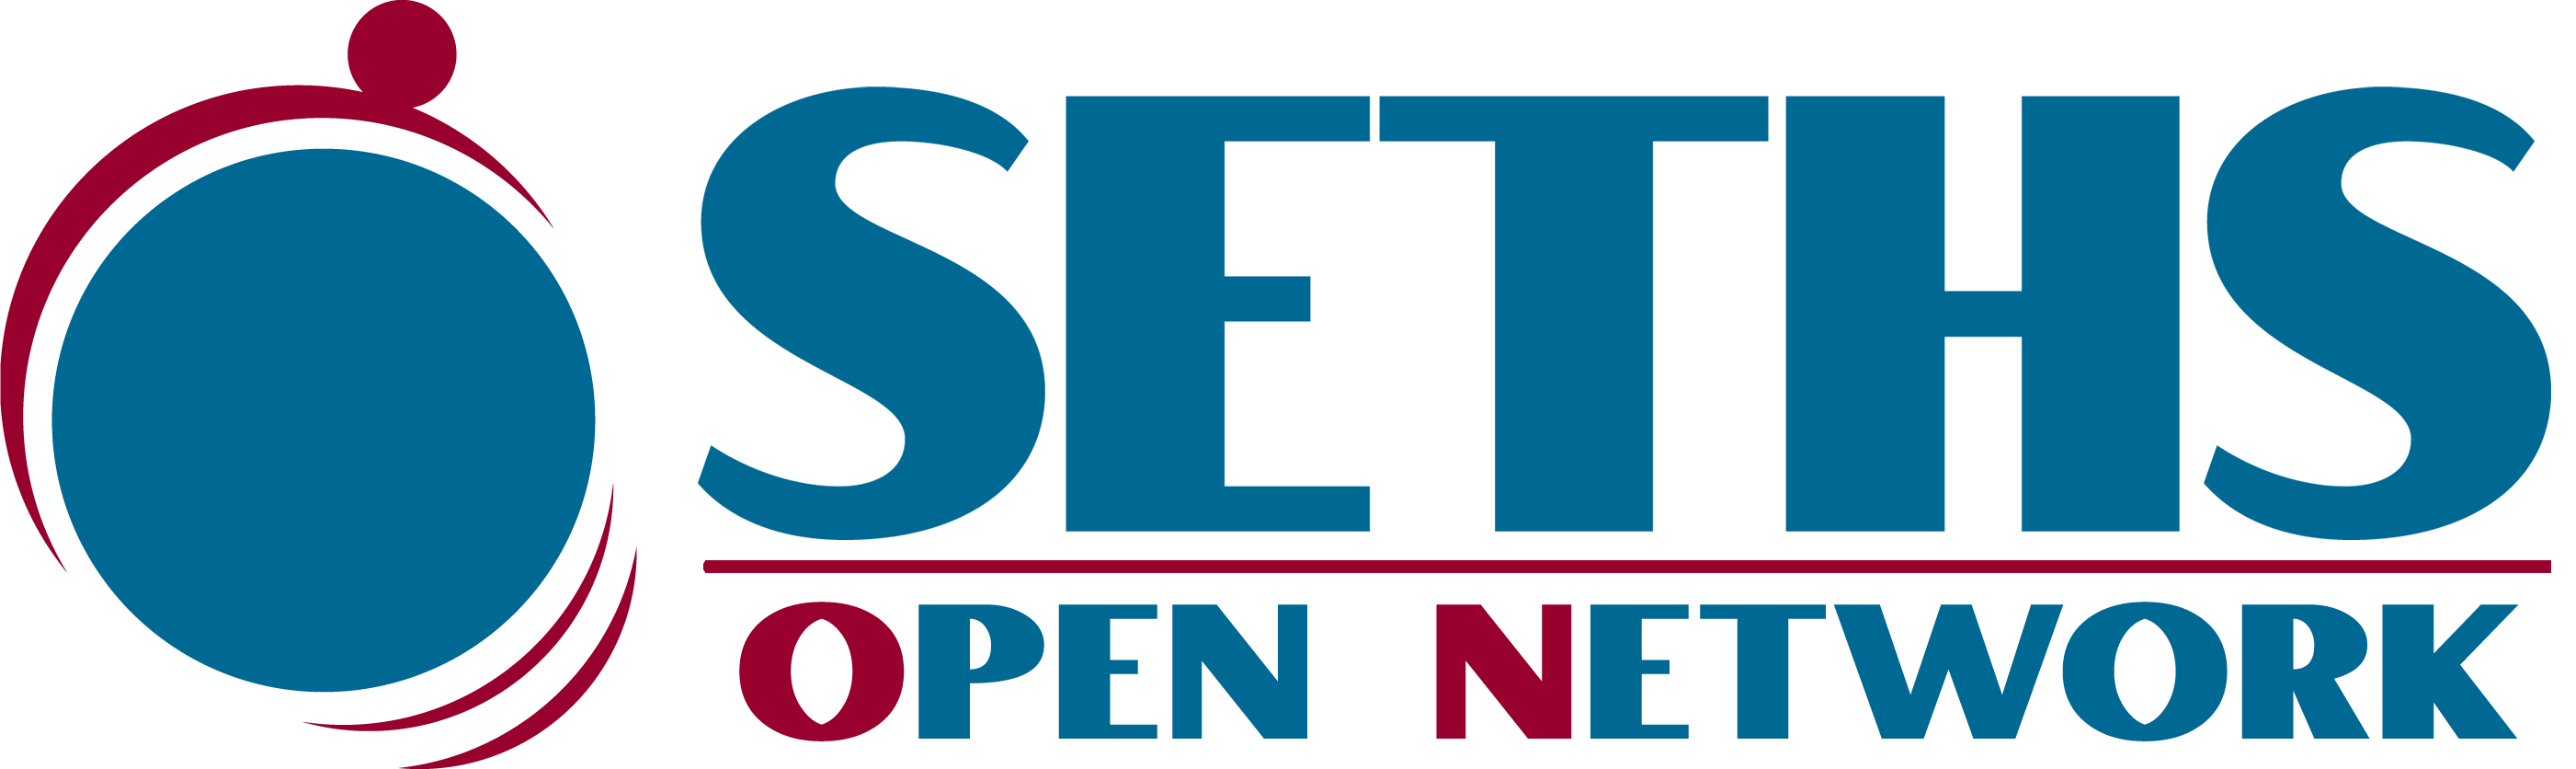 Seths Open Network